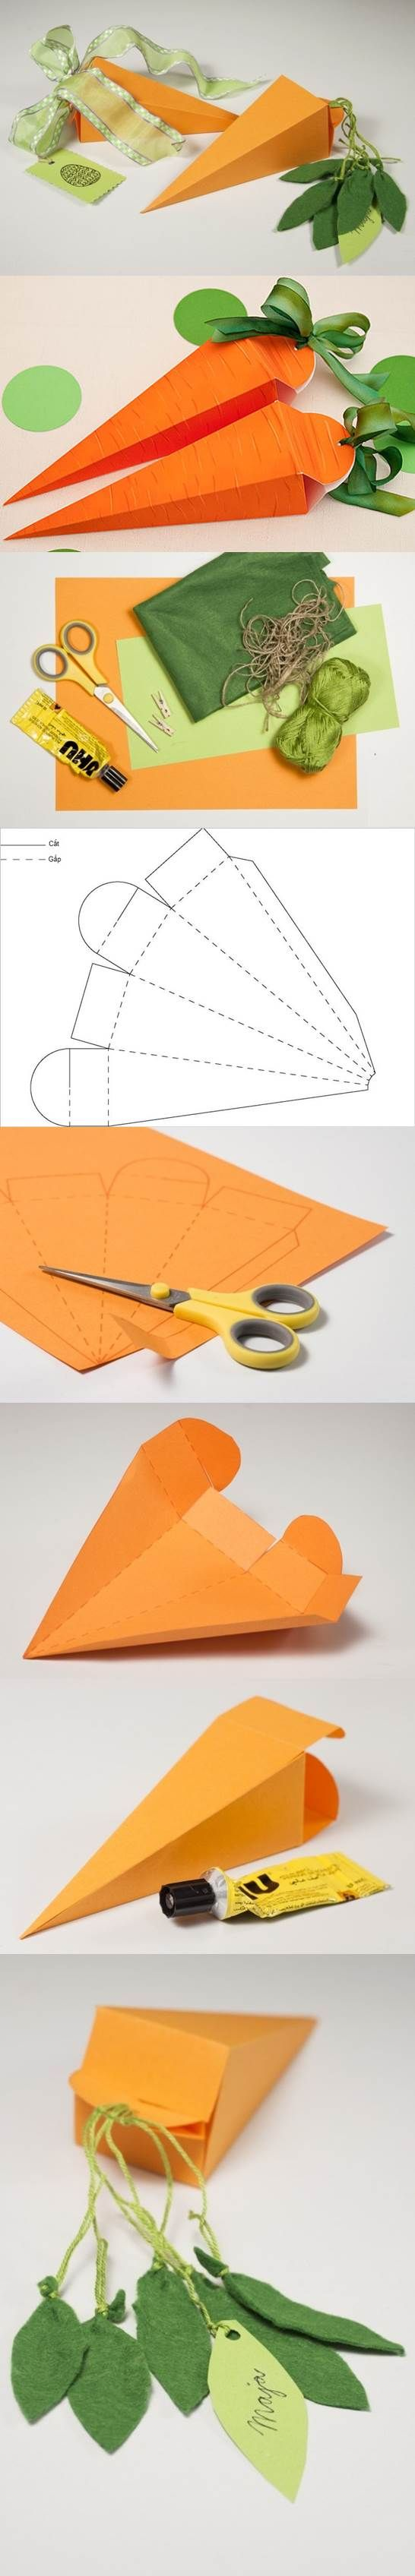 DIY Cute Carrot Shaped Gift Box | iCreativeIdeas.com Like Us on Facebook ==> https://www.facebook.com/icreativeideas: